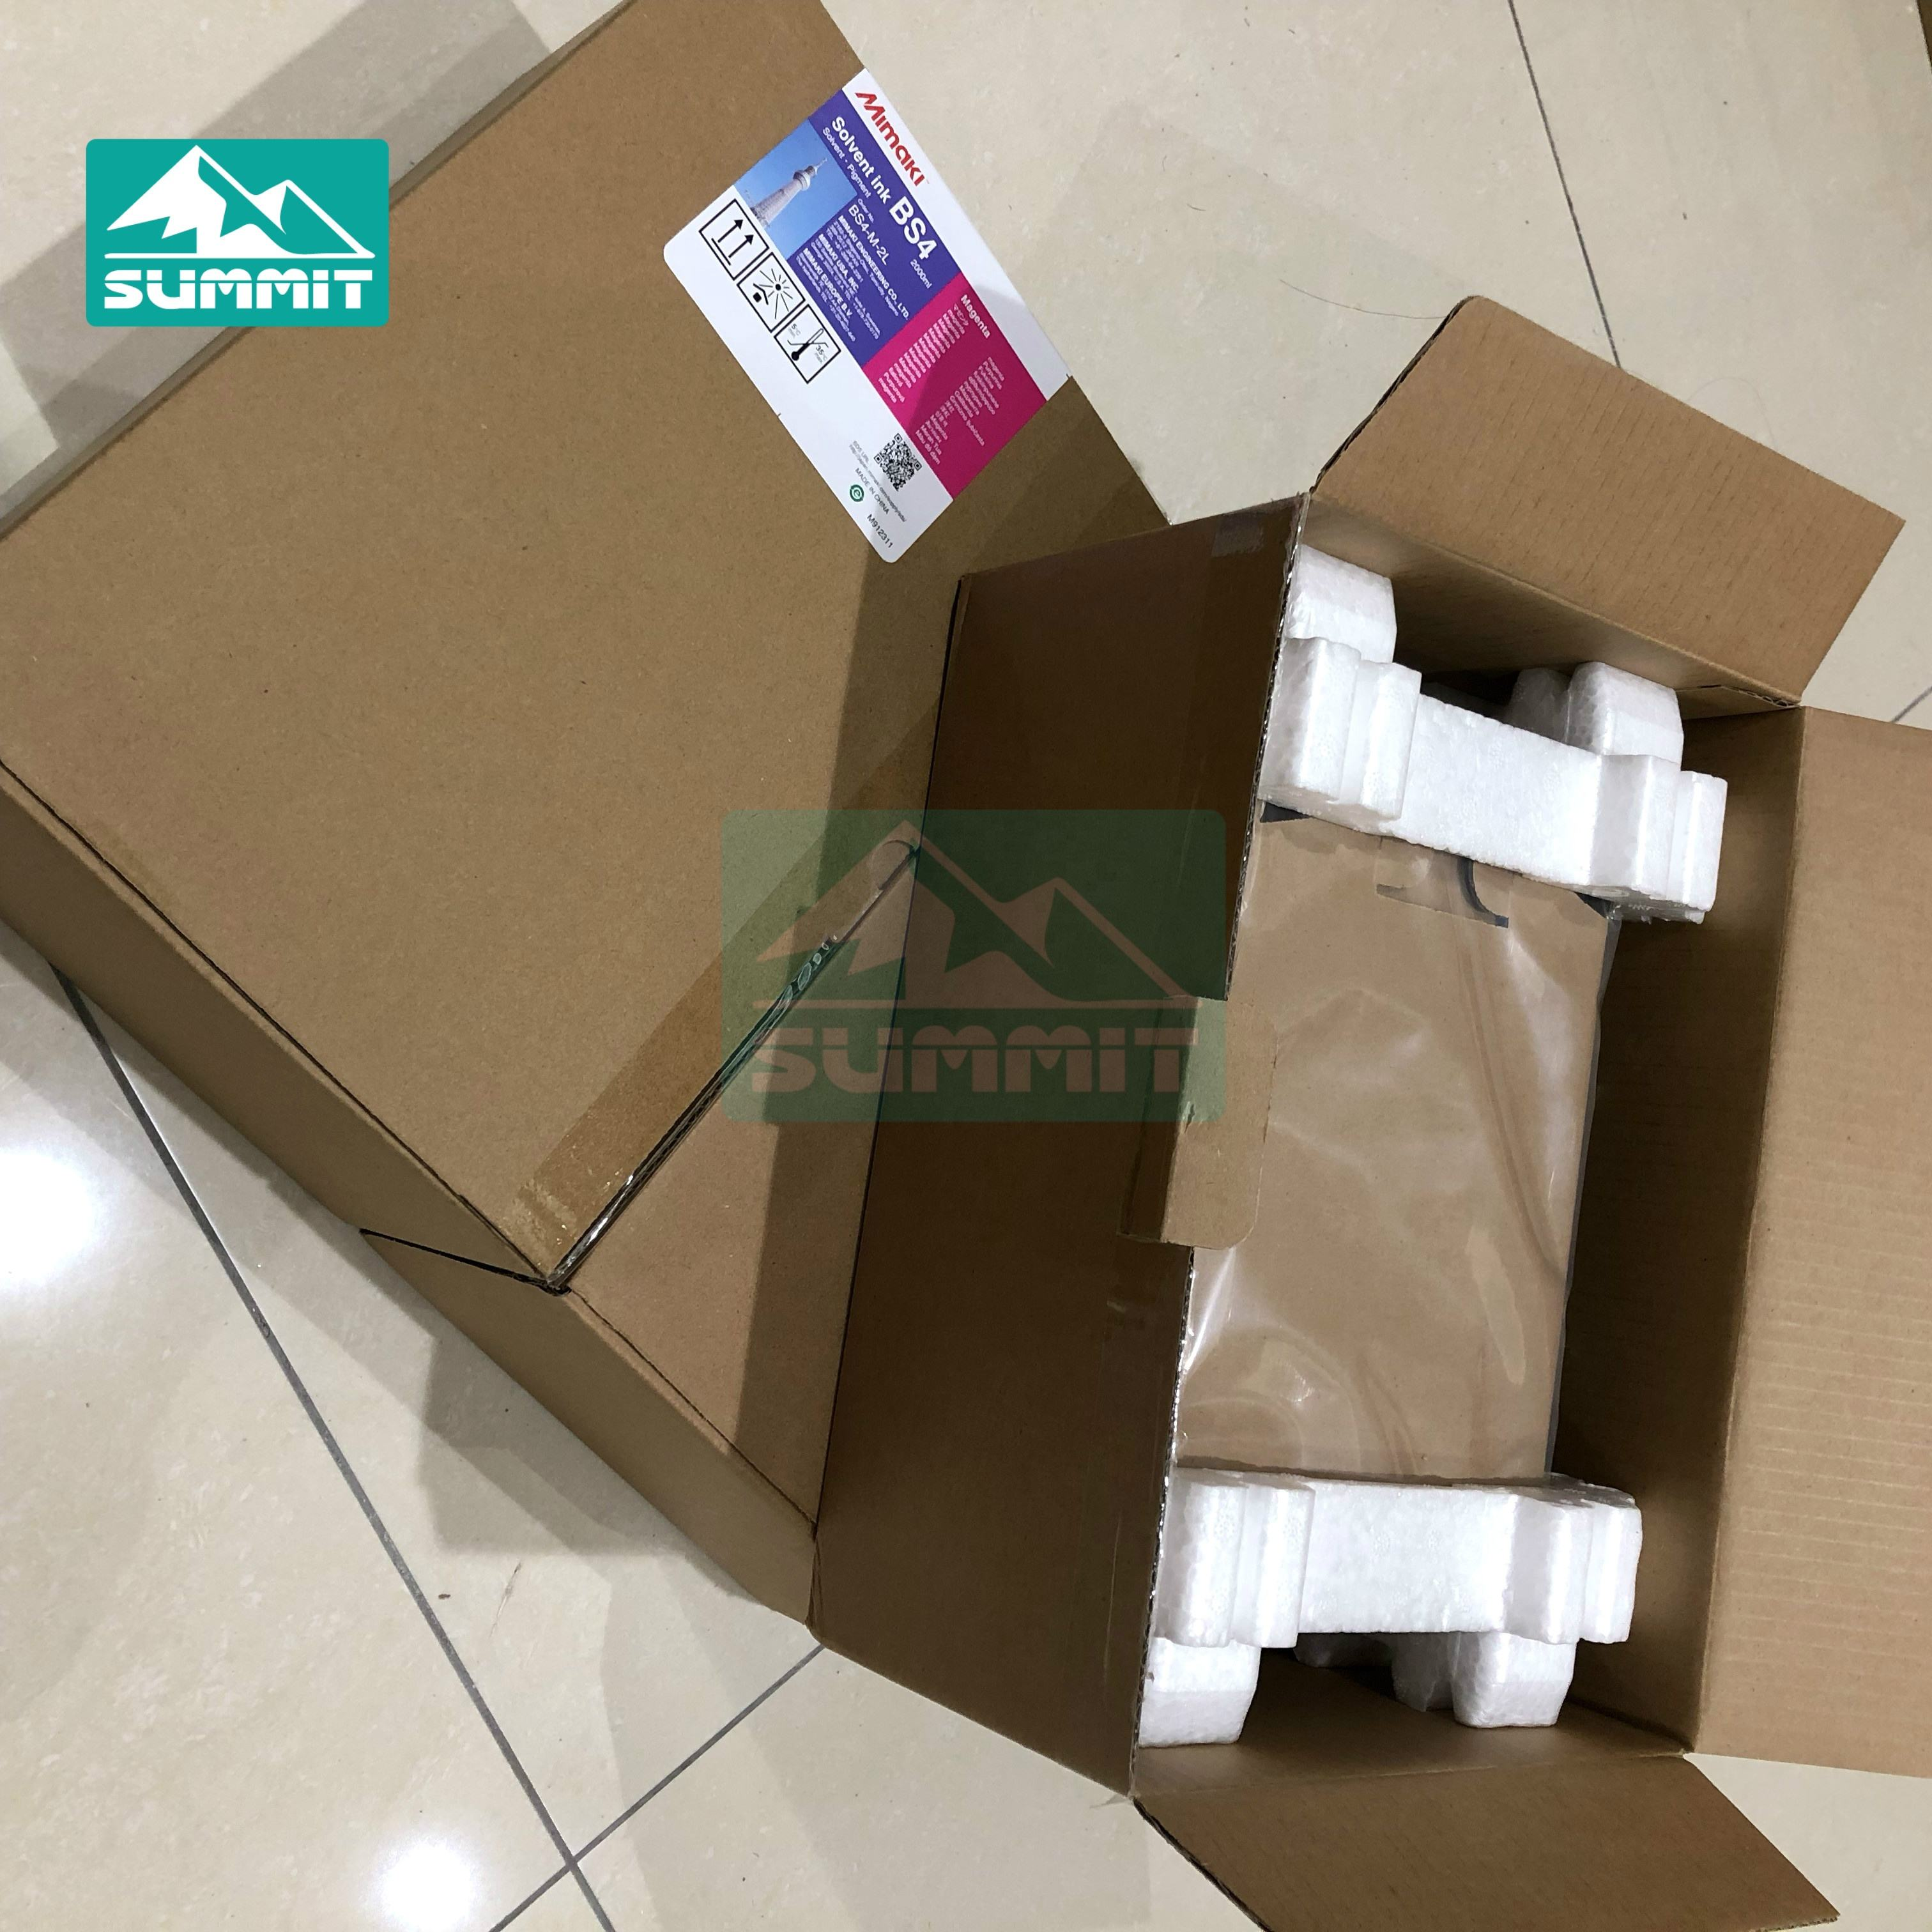 2Liter Original Mimaki Eco Solvent Ink BS4 Cyan/ Magenta/ Yellow/ Black For JV33/34/150/300 CJV30/150/300